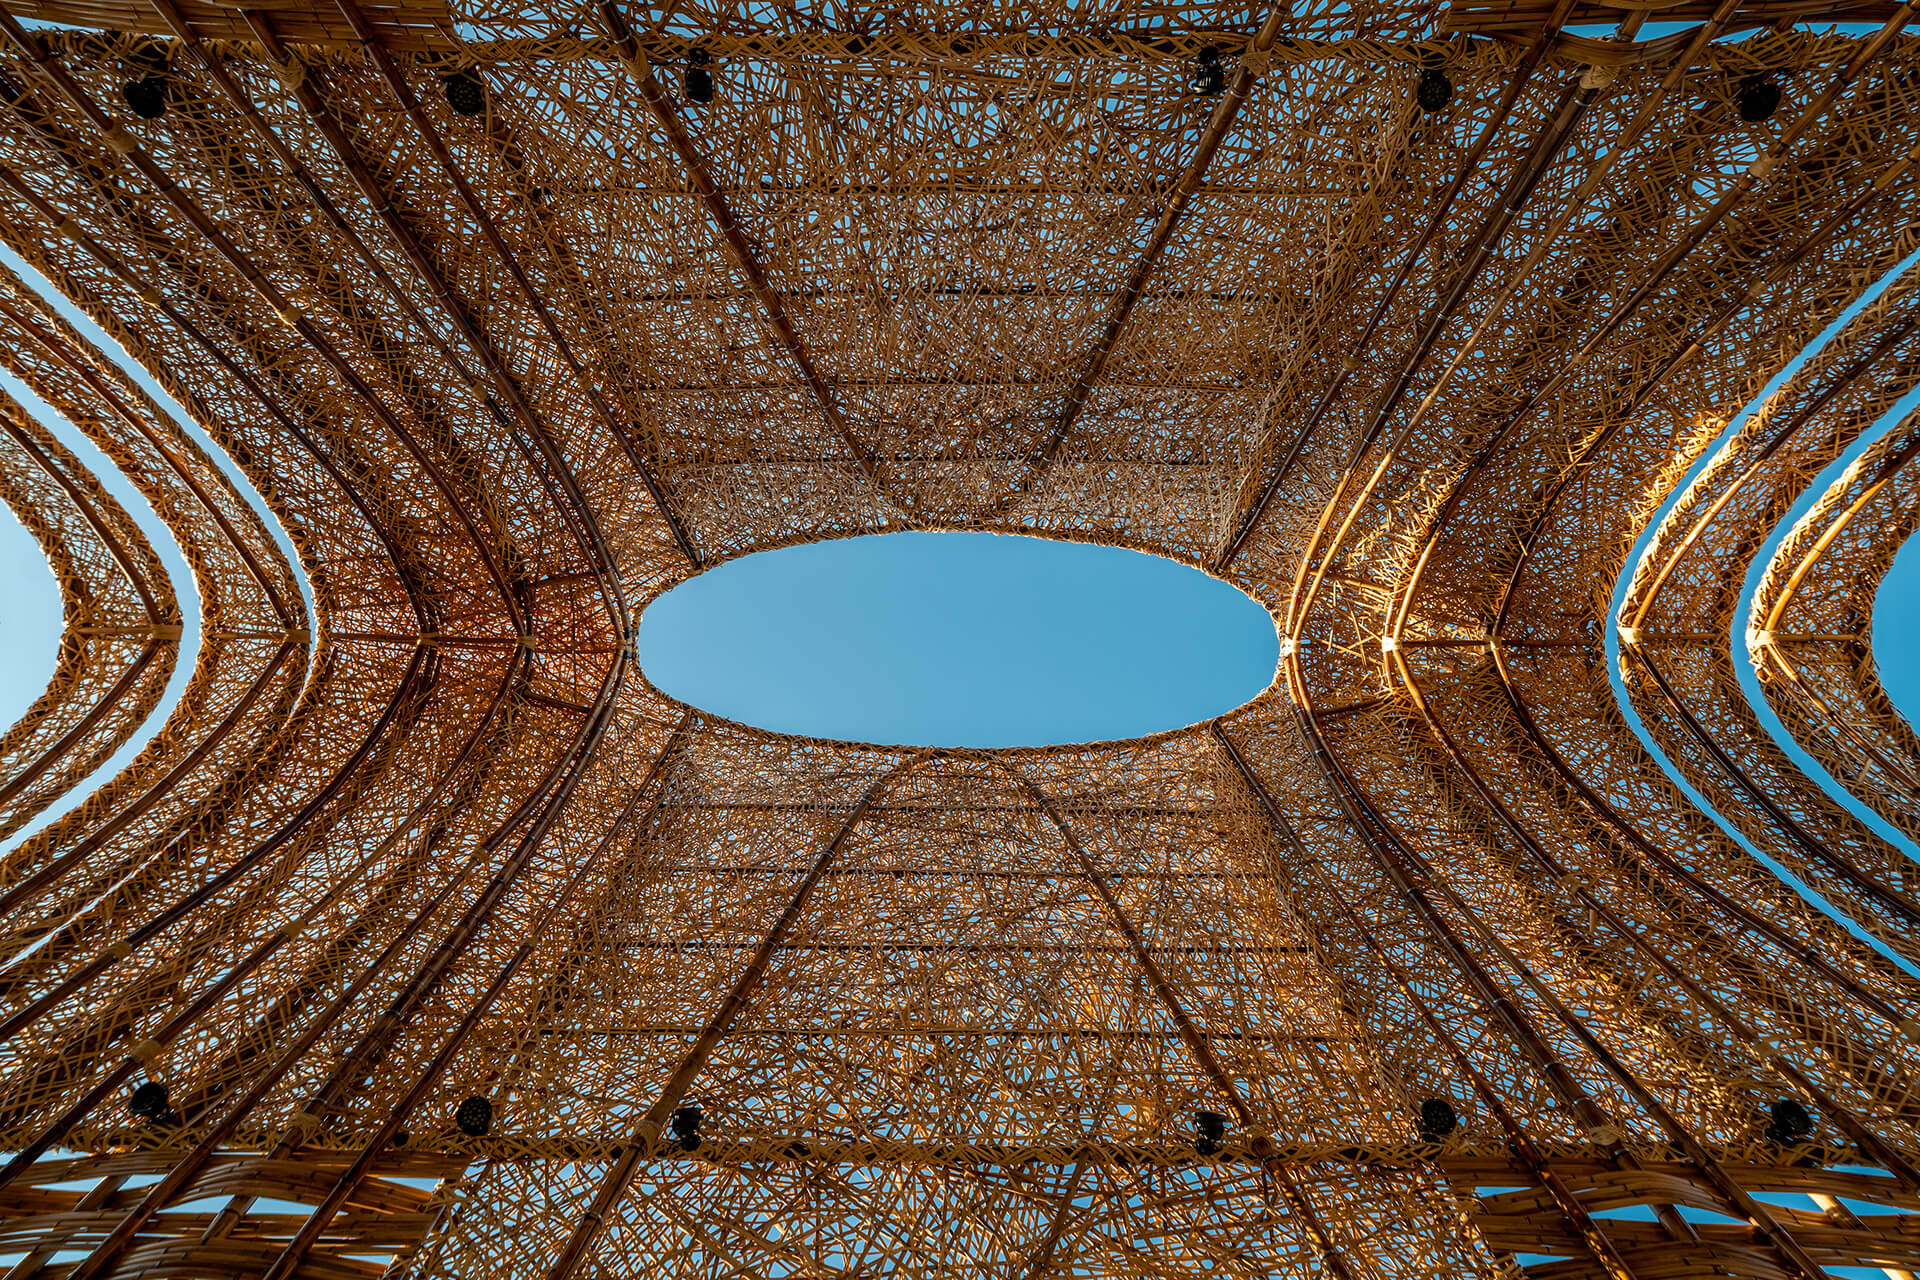 The arched pavilion has been conceived with traditional and low carbon methods | Zuo Studio creates the Bamboo Pavilion for Taichung World Flora Exposition | STIRworld